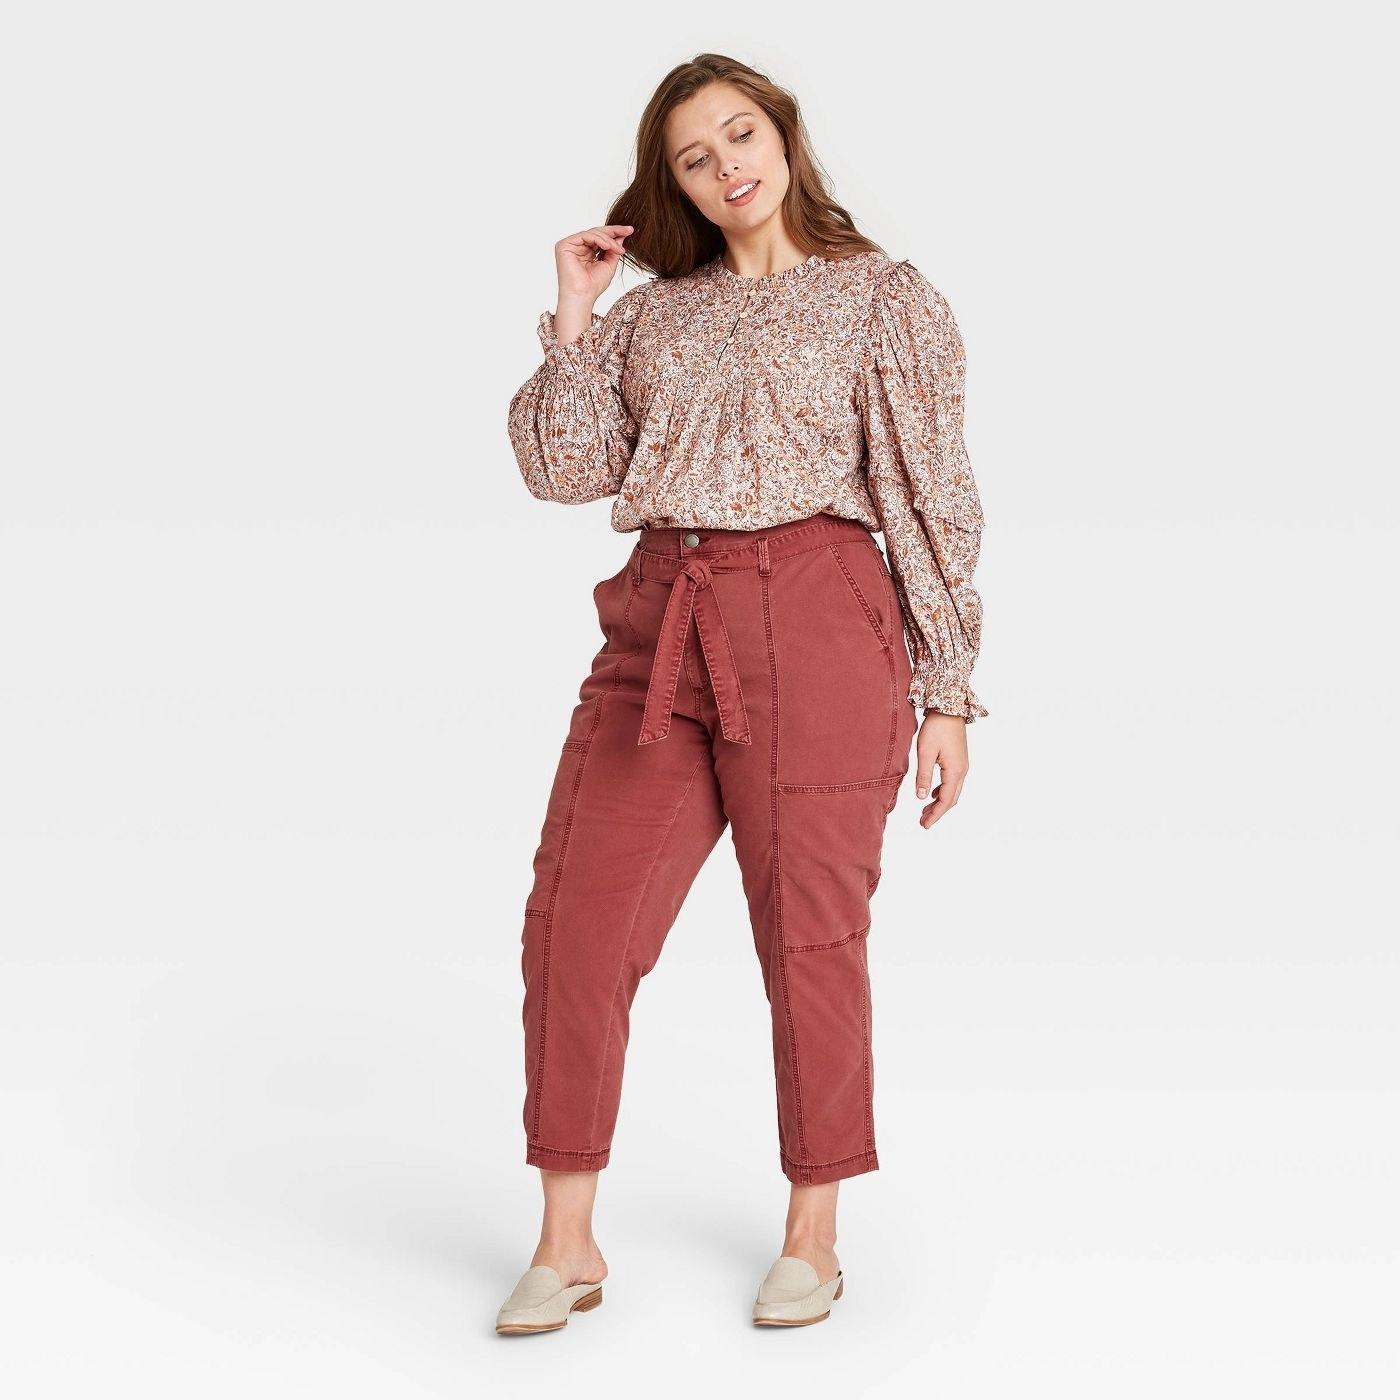 Model wearing burnt red pants tapered texture